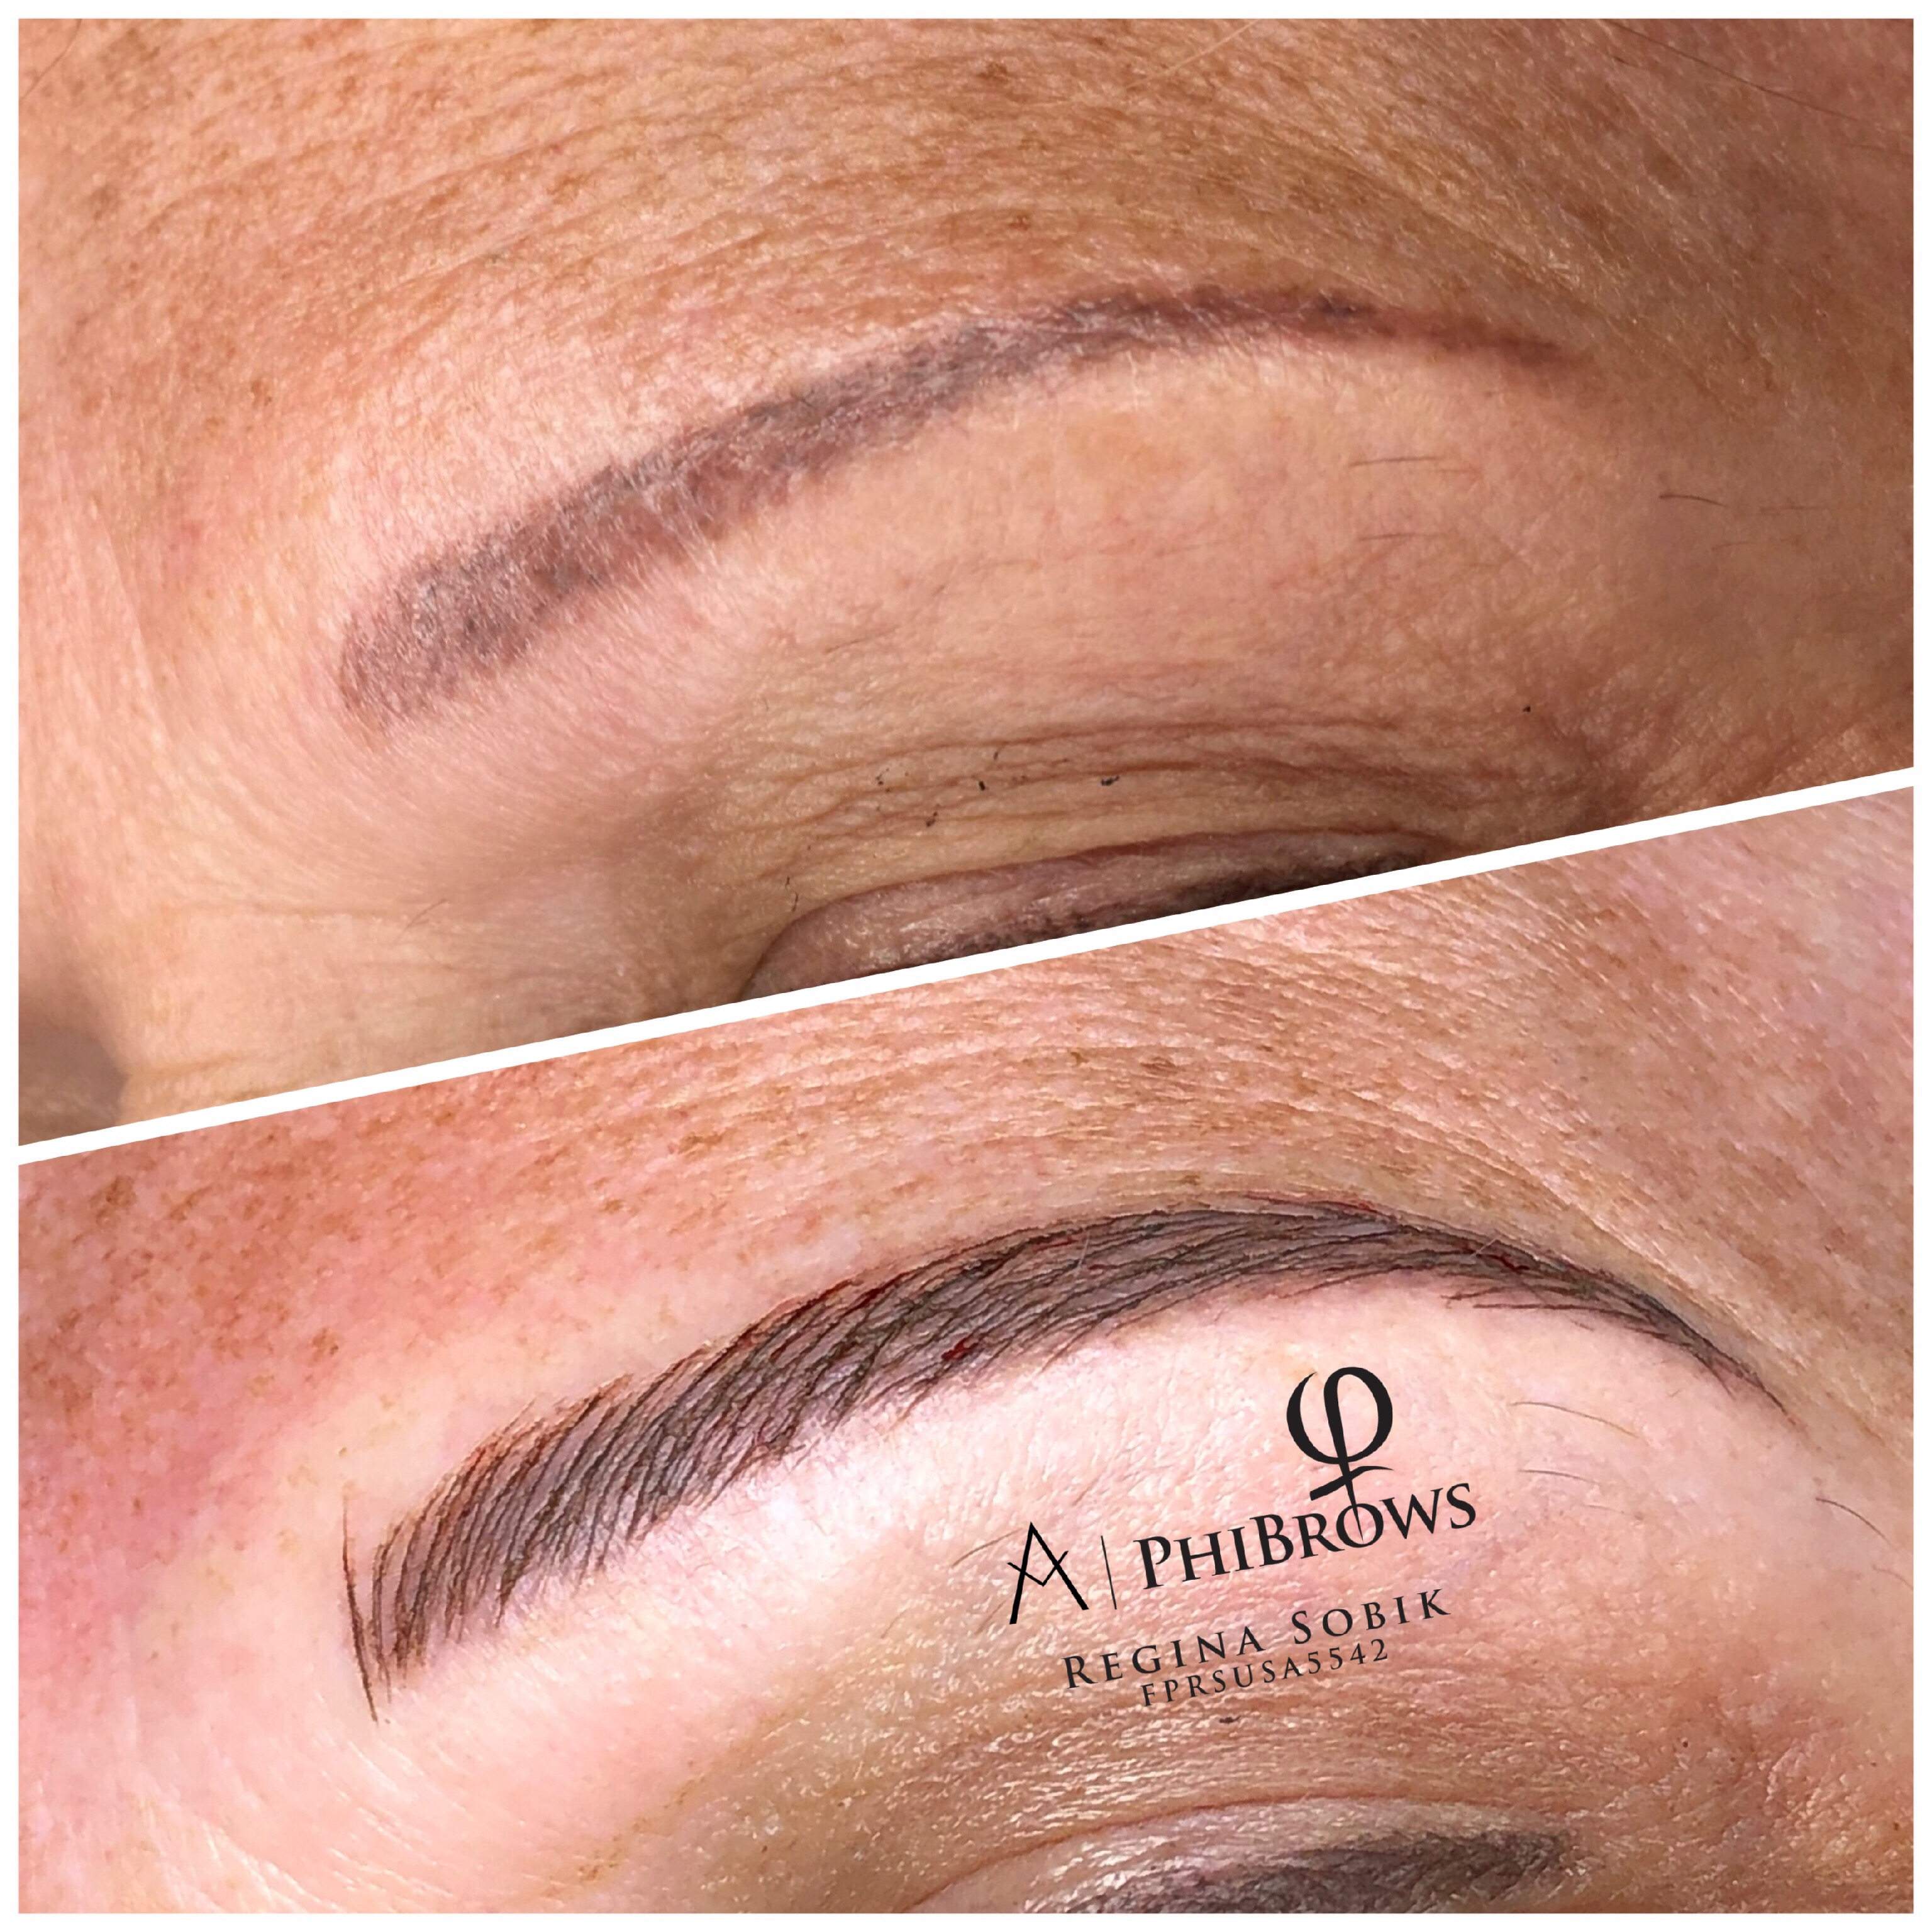 Microblading touchup after 2 years